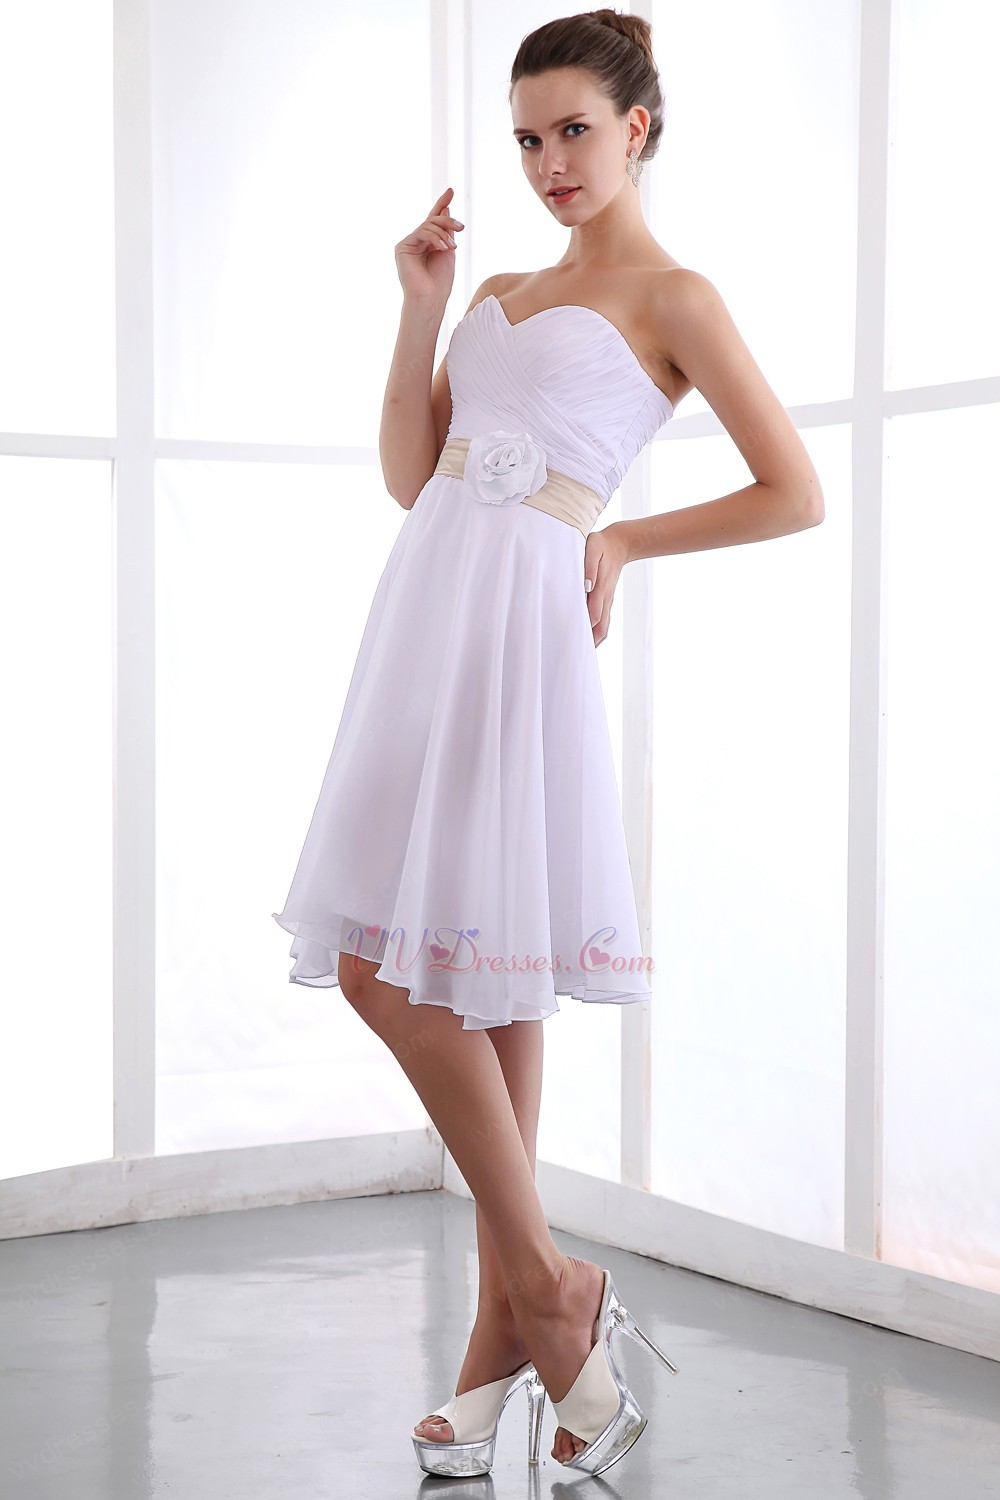 Short white chiffon bridesmaid dress under 100 dollars for Short white wedding dresses under 100